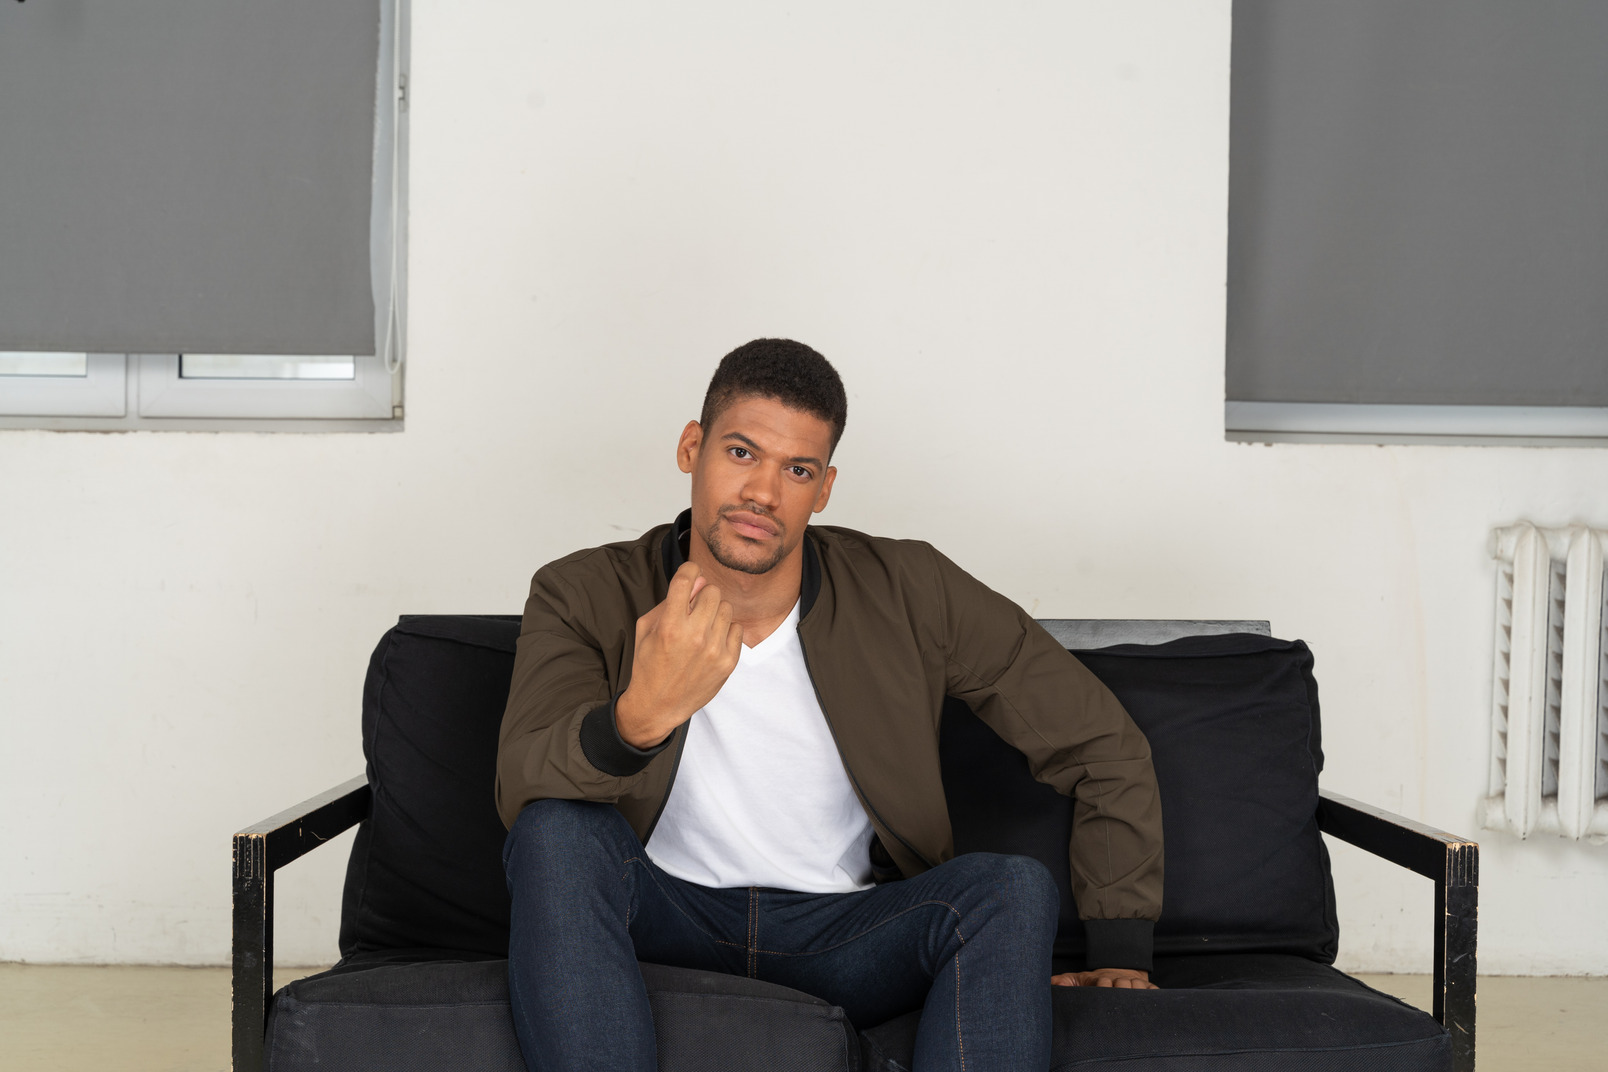 Young man sitting on the sofa and showing hand gesture